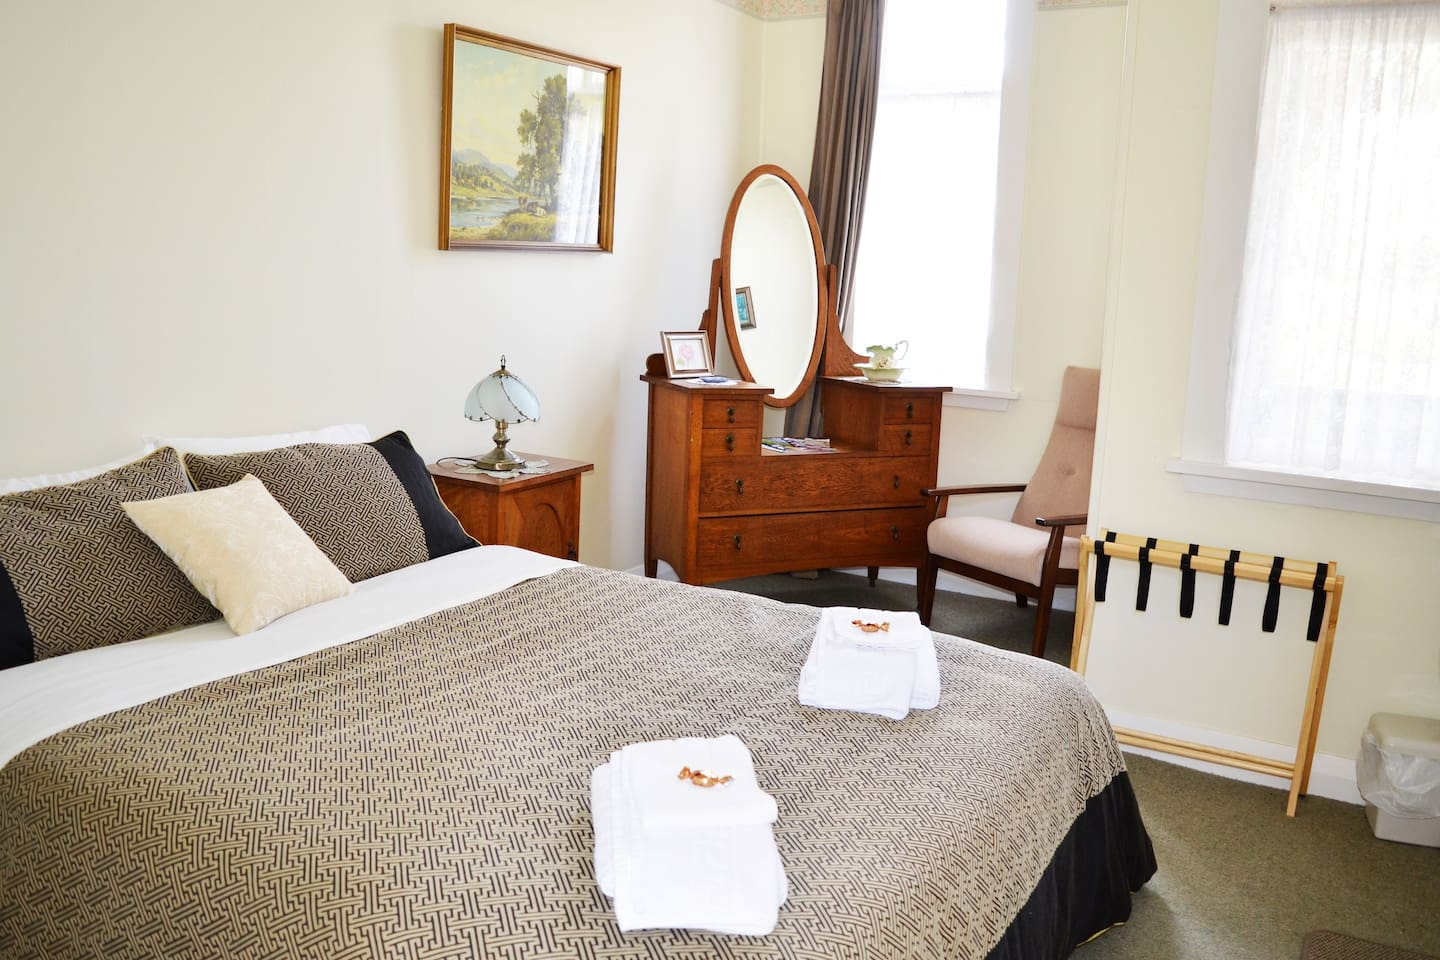 B&B Deluxe private double room with shared bathroom facilities